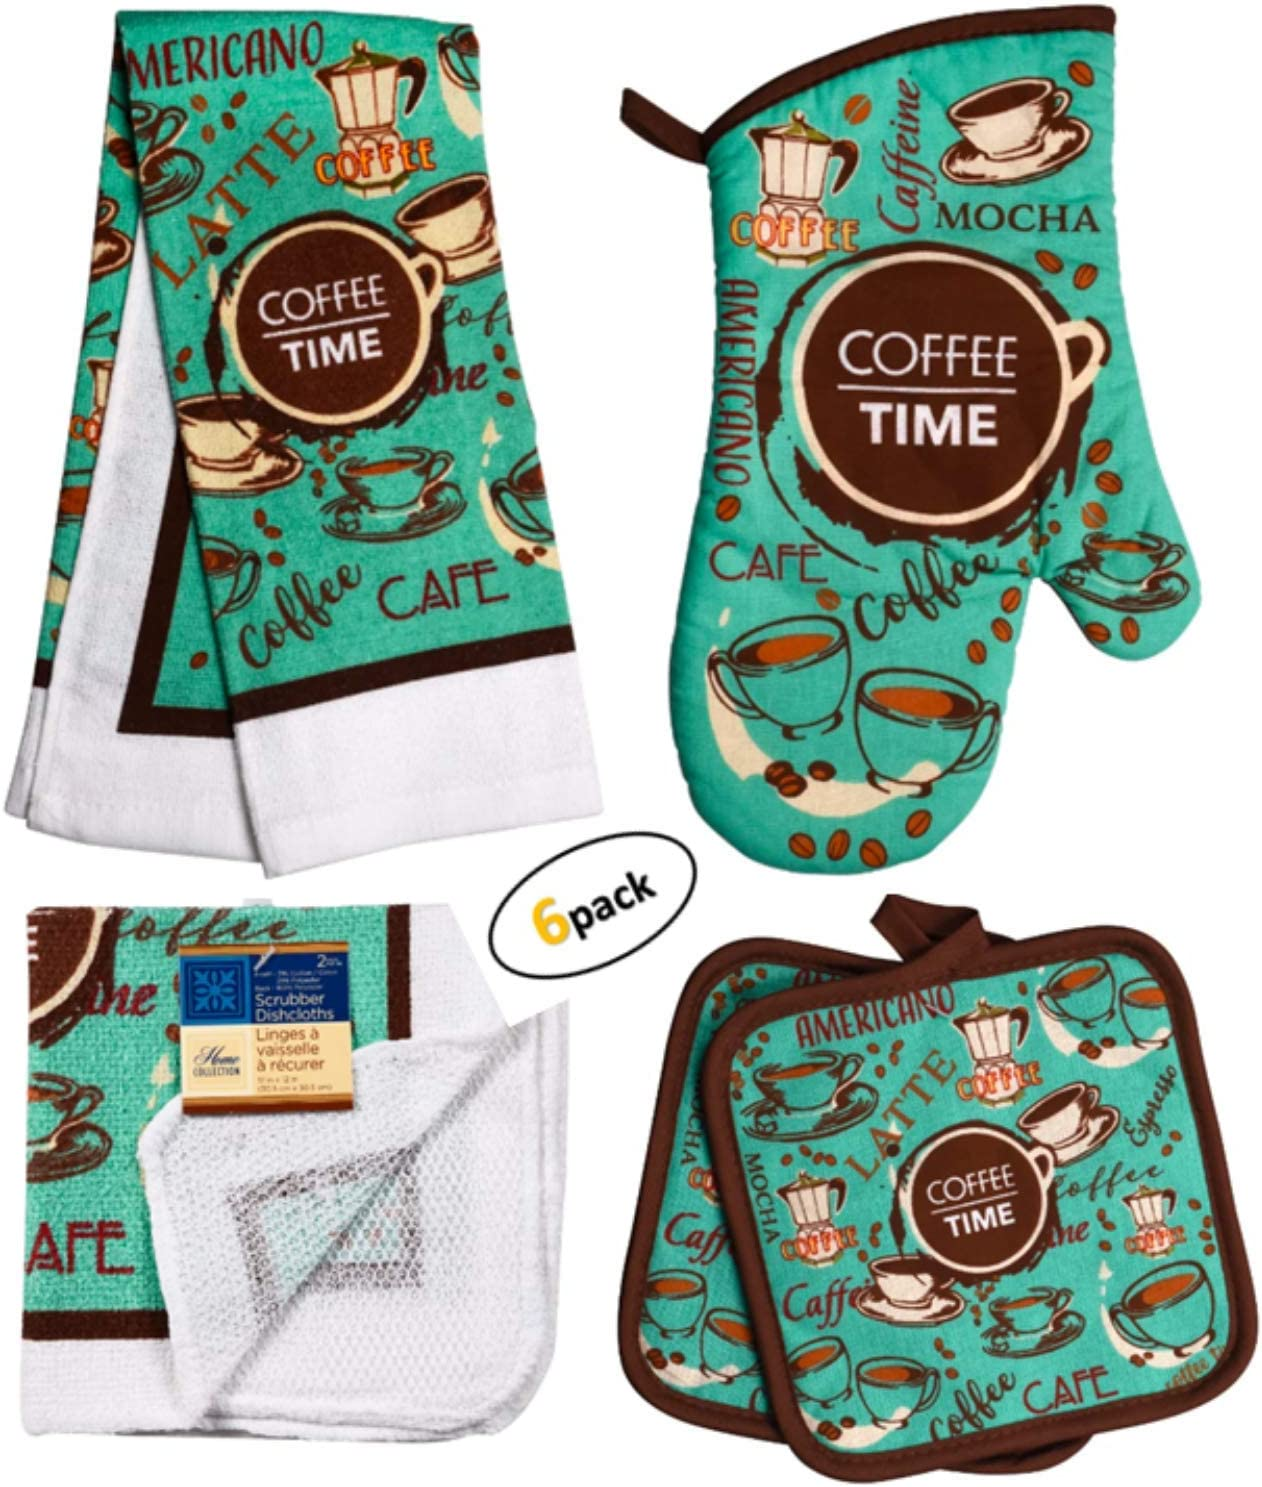 Coffee Decor - Towel Linen Set (6 Pc) Coffee Time Americano Cafe Themed - Kitchen Towel 2 Potholders 2 Scrubber Dishcloths 1 Oven Mitt - Oven Mitts - Kitchen Decor